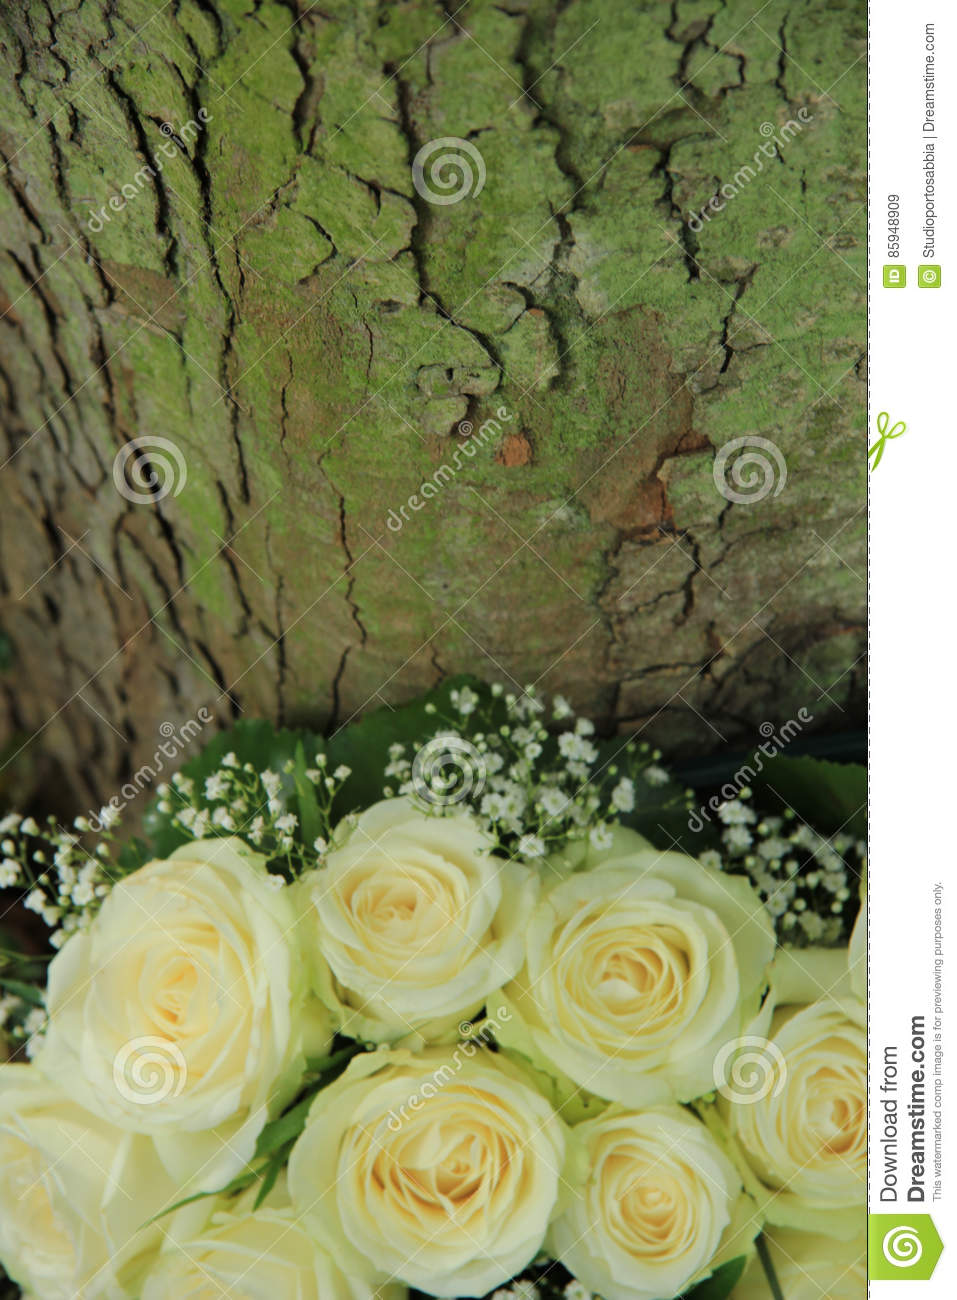 Outdoor Wedding Decorations White Flowers Stock Image Image Of